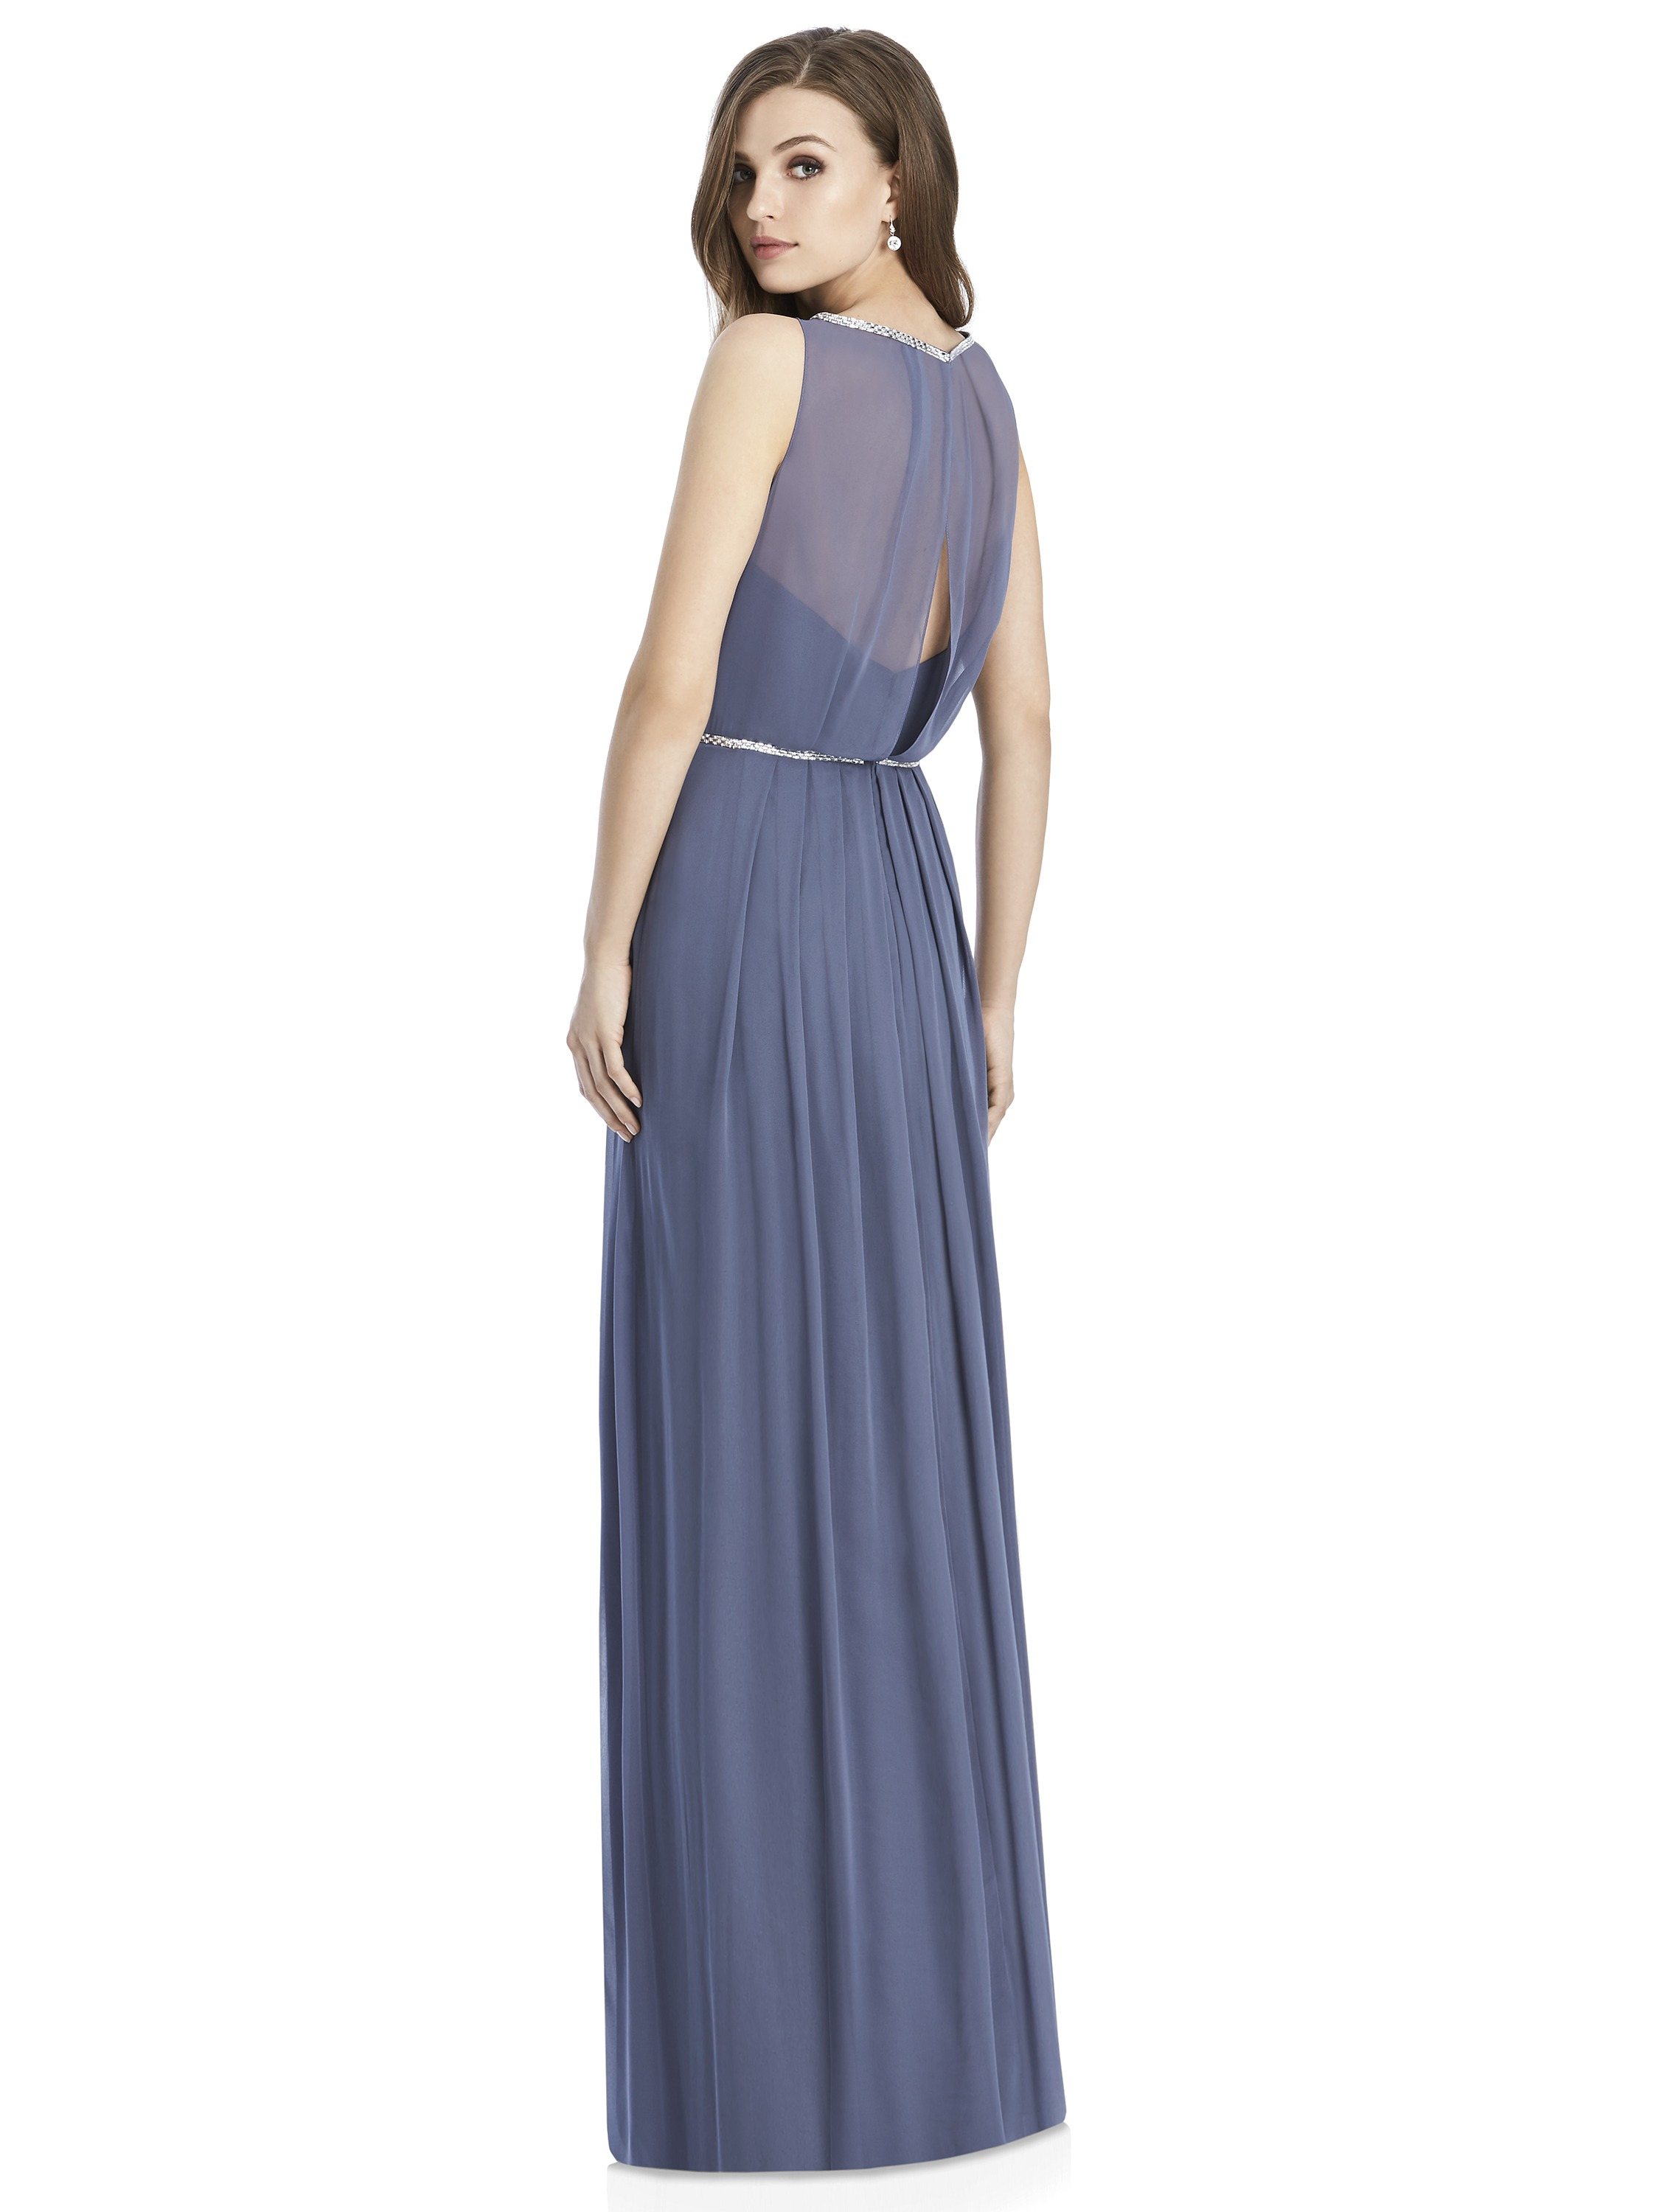 Jenny Packham by The Dessy Group, Periwinkle Bridesmaid Dress – Back